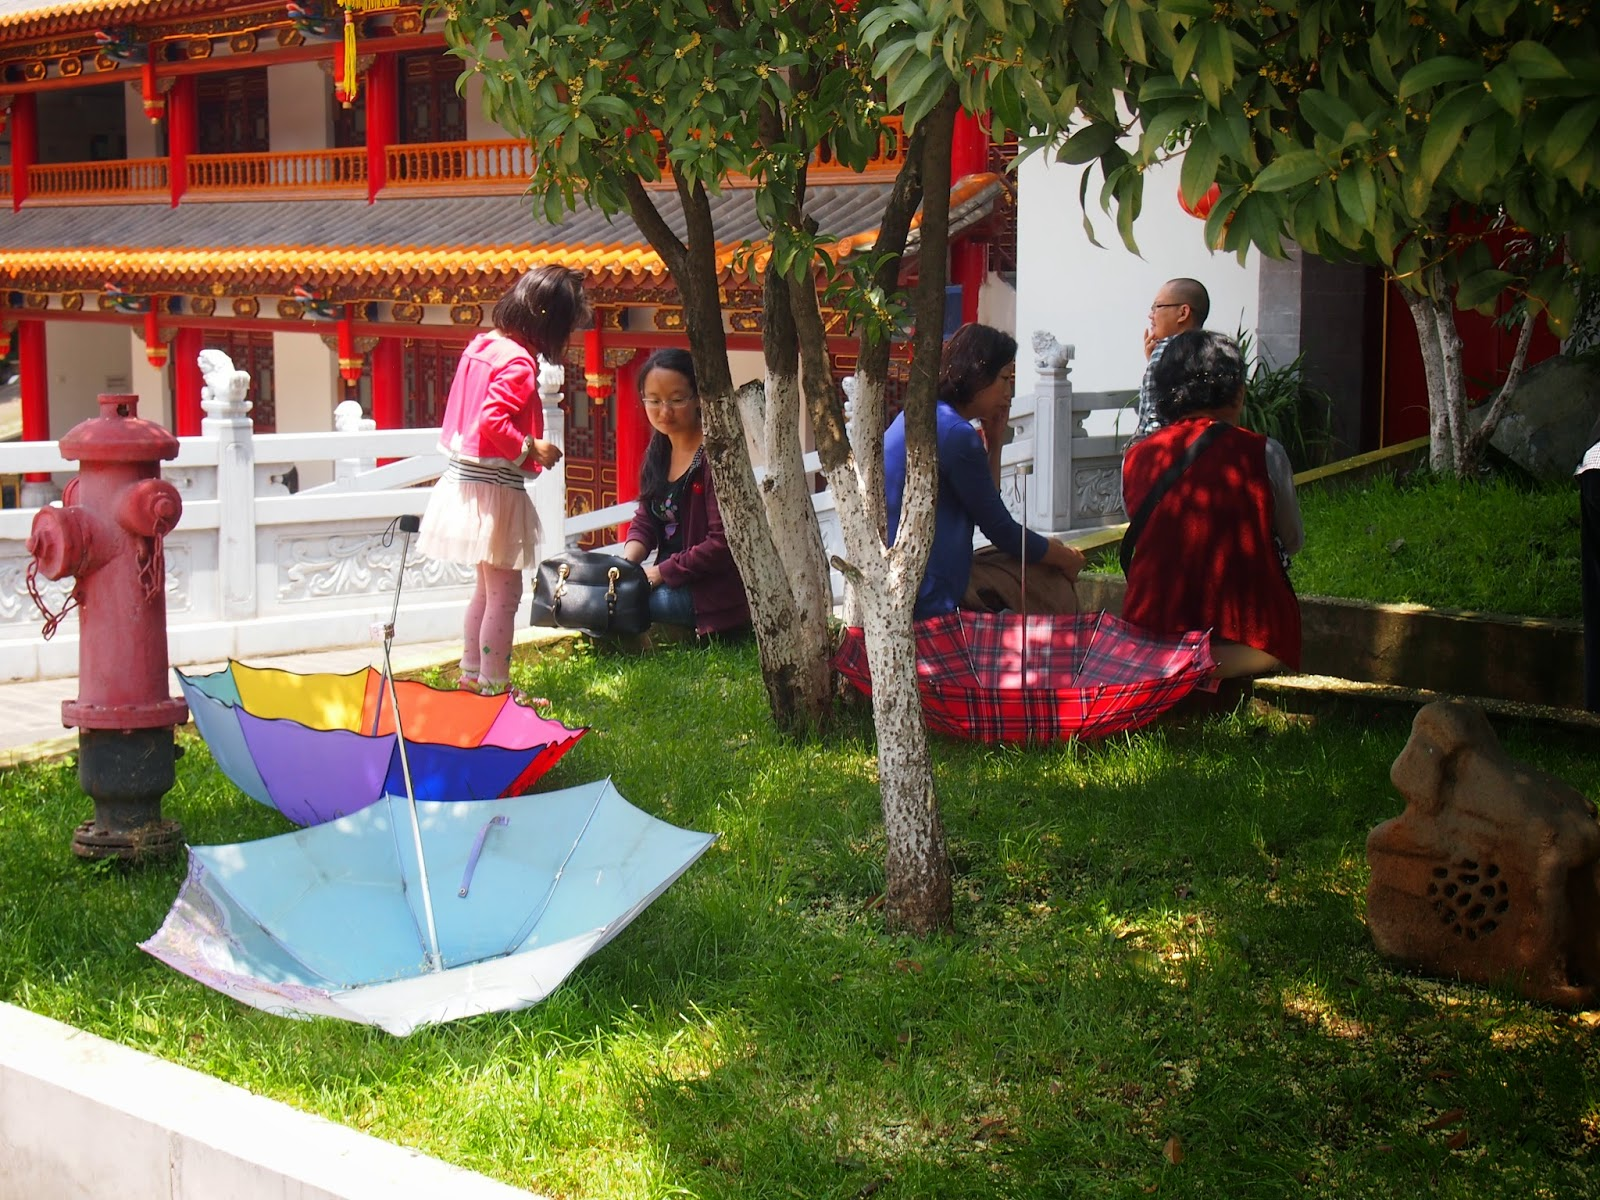 A family relaxing in the shade at the Yuan Tong Temple in Kunming